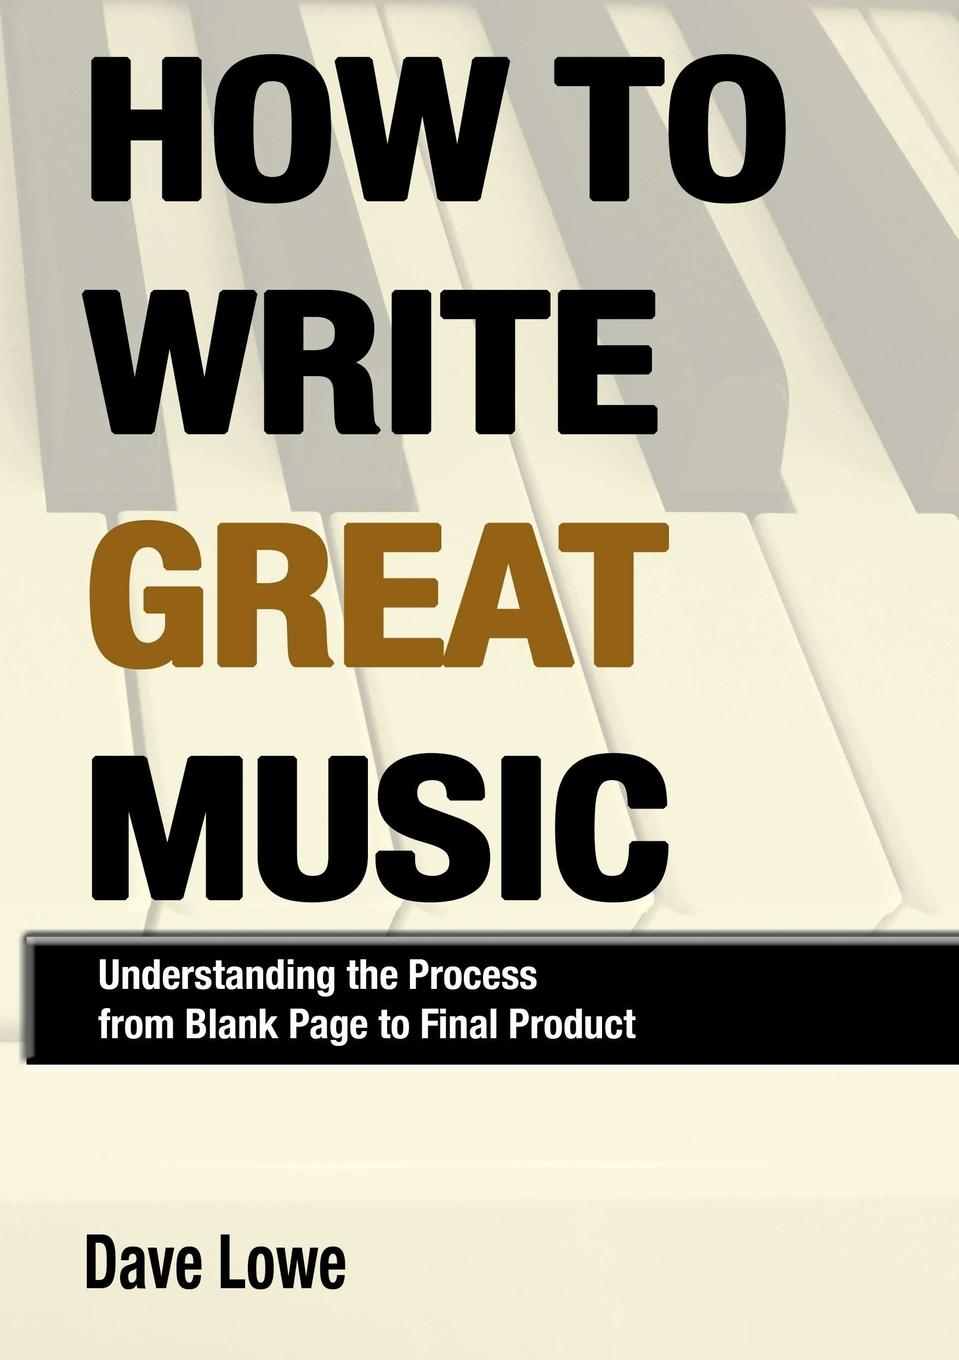 Dave Lowe How To Write Great Music - Understanding the Process from Blank Page to Final Product ethnic population and product choices